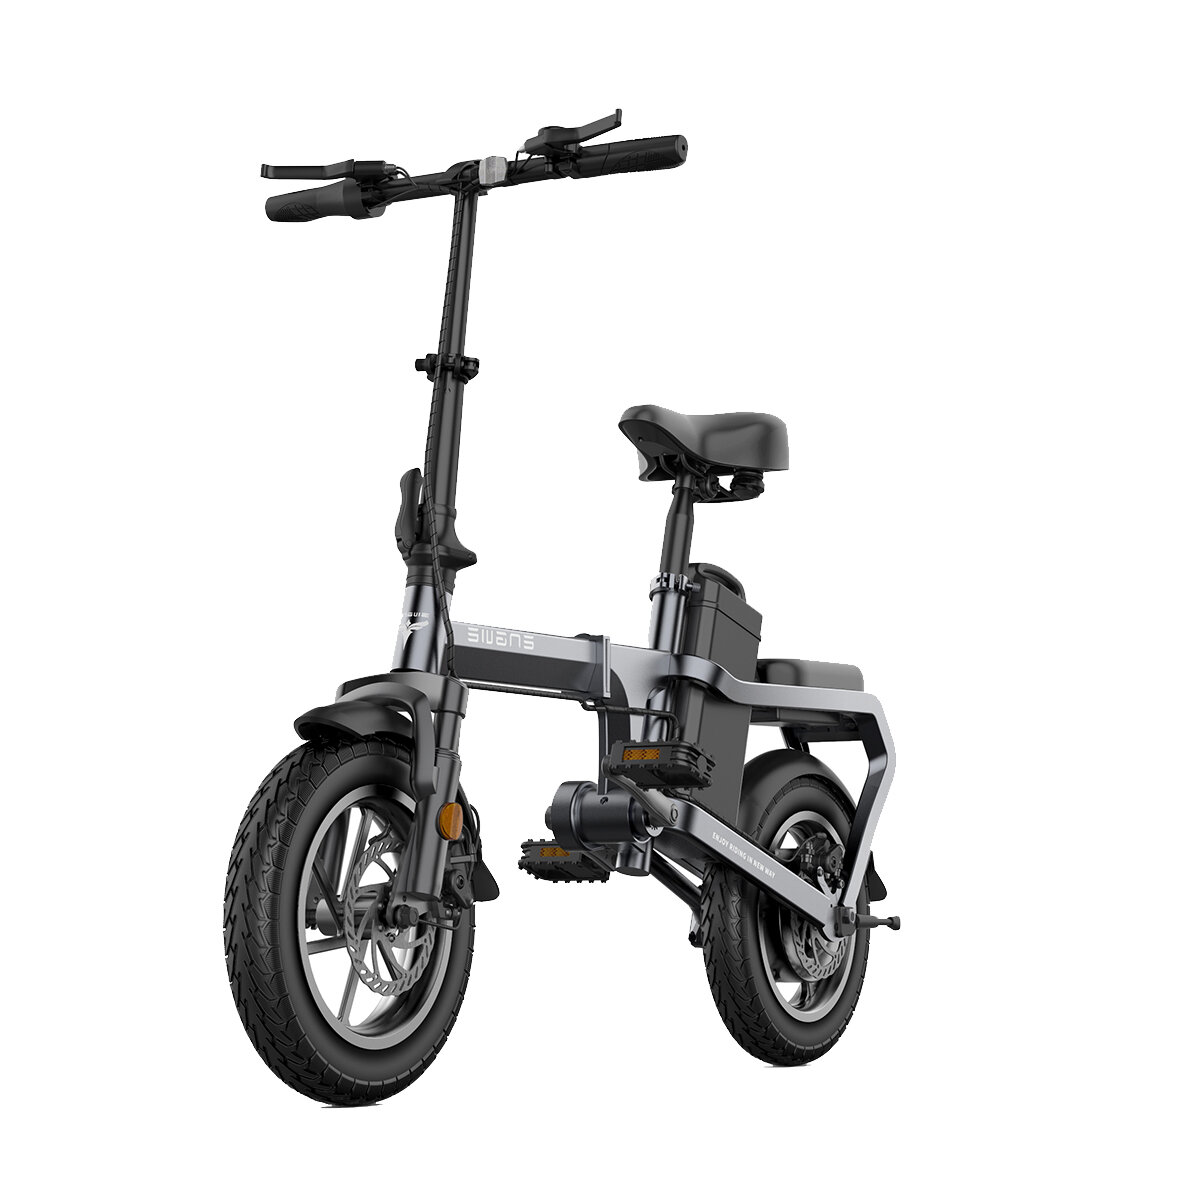 [EU DIRECT] ENGWE X5S 15Ah 48V 350W 14in Chainless Folding Electric Bike With Removable Battery 30km/h Top Speed E Bike